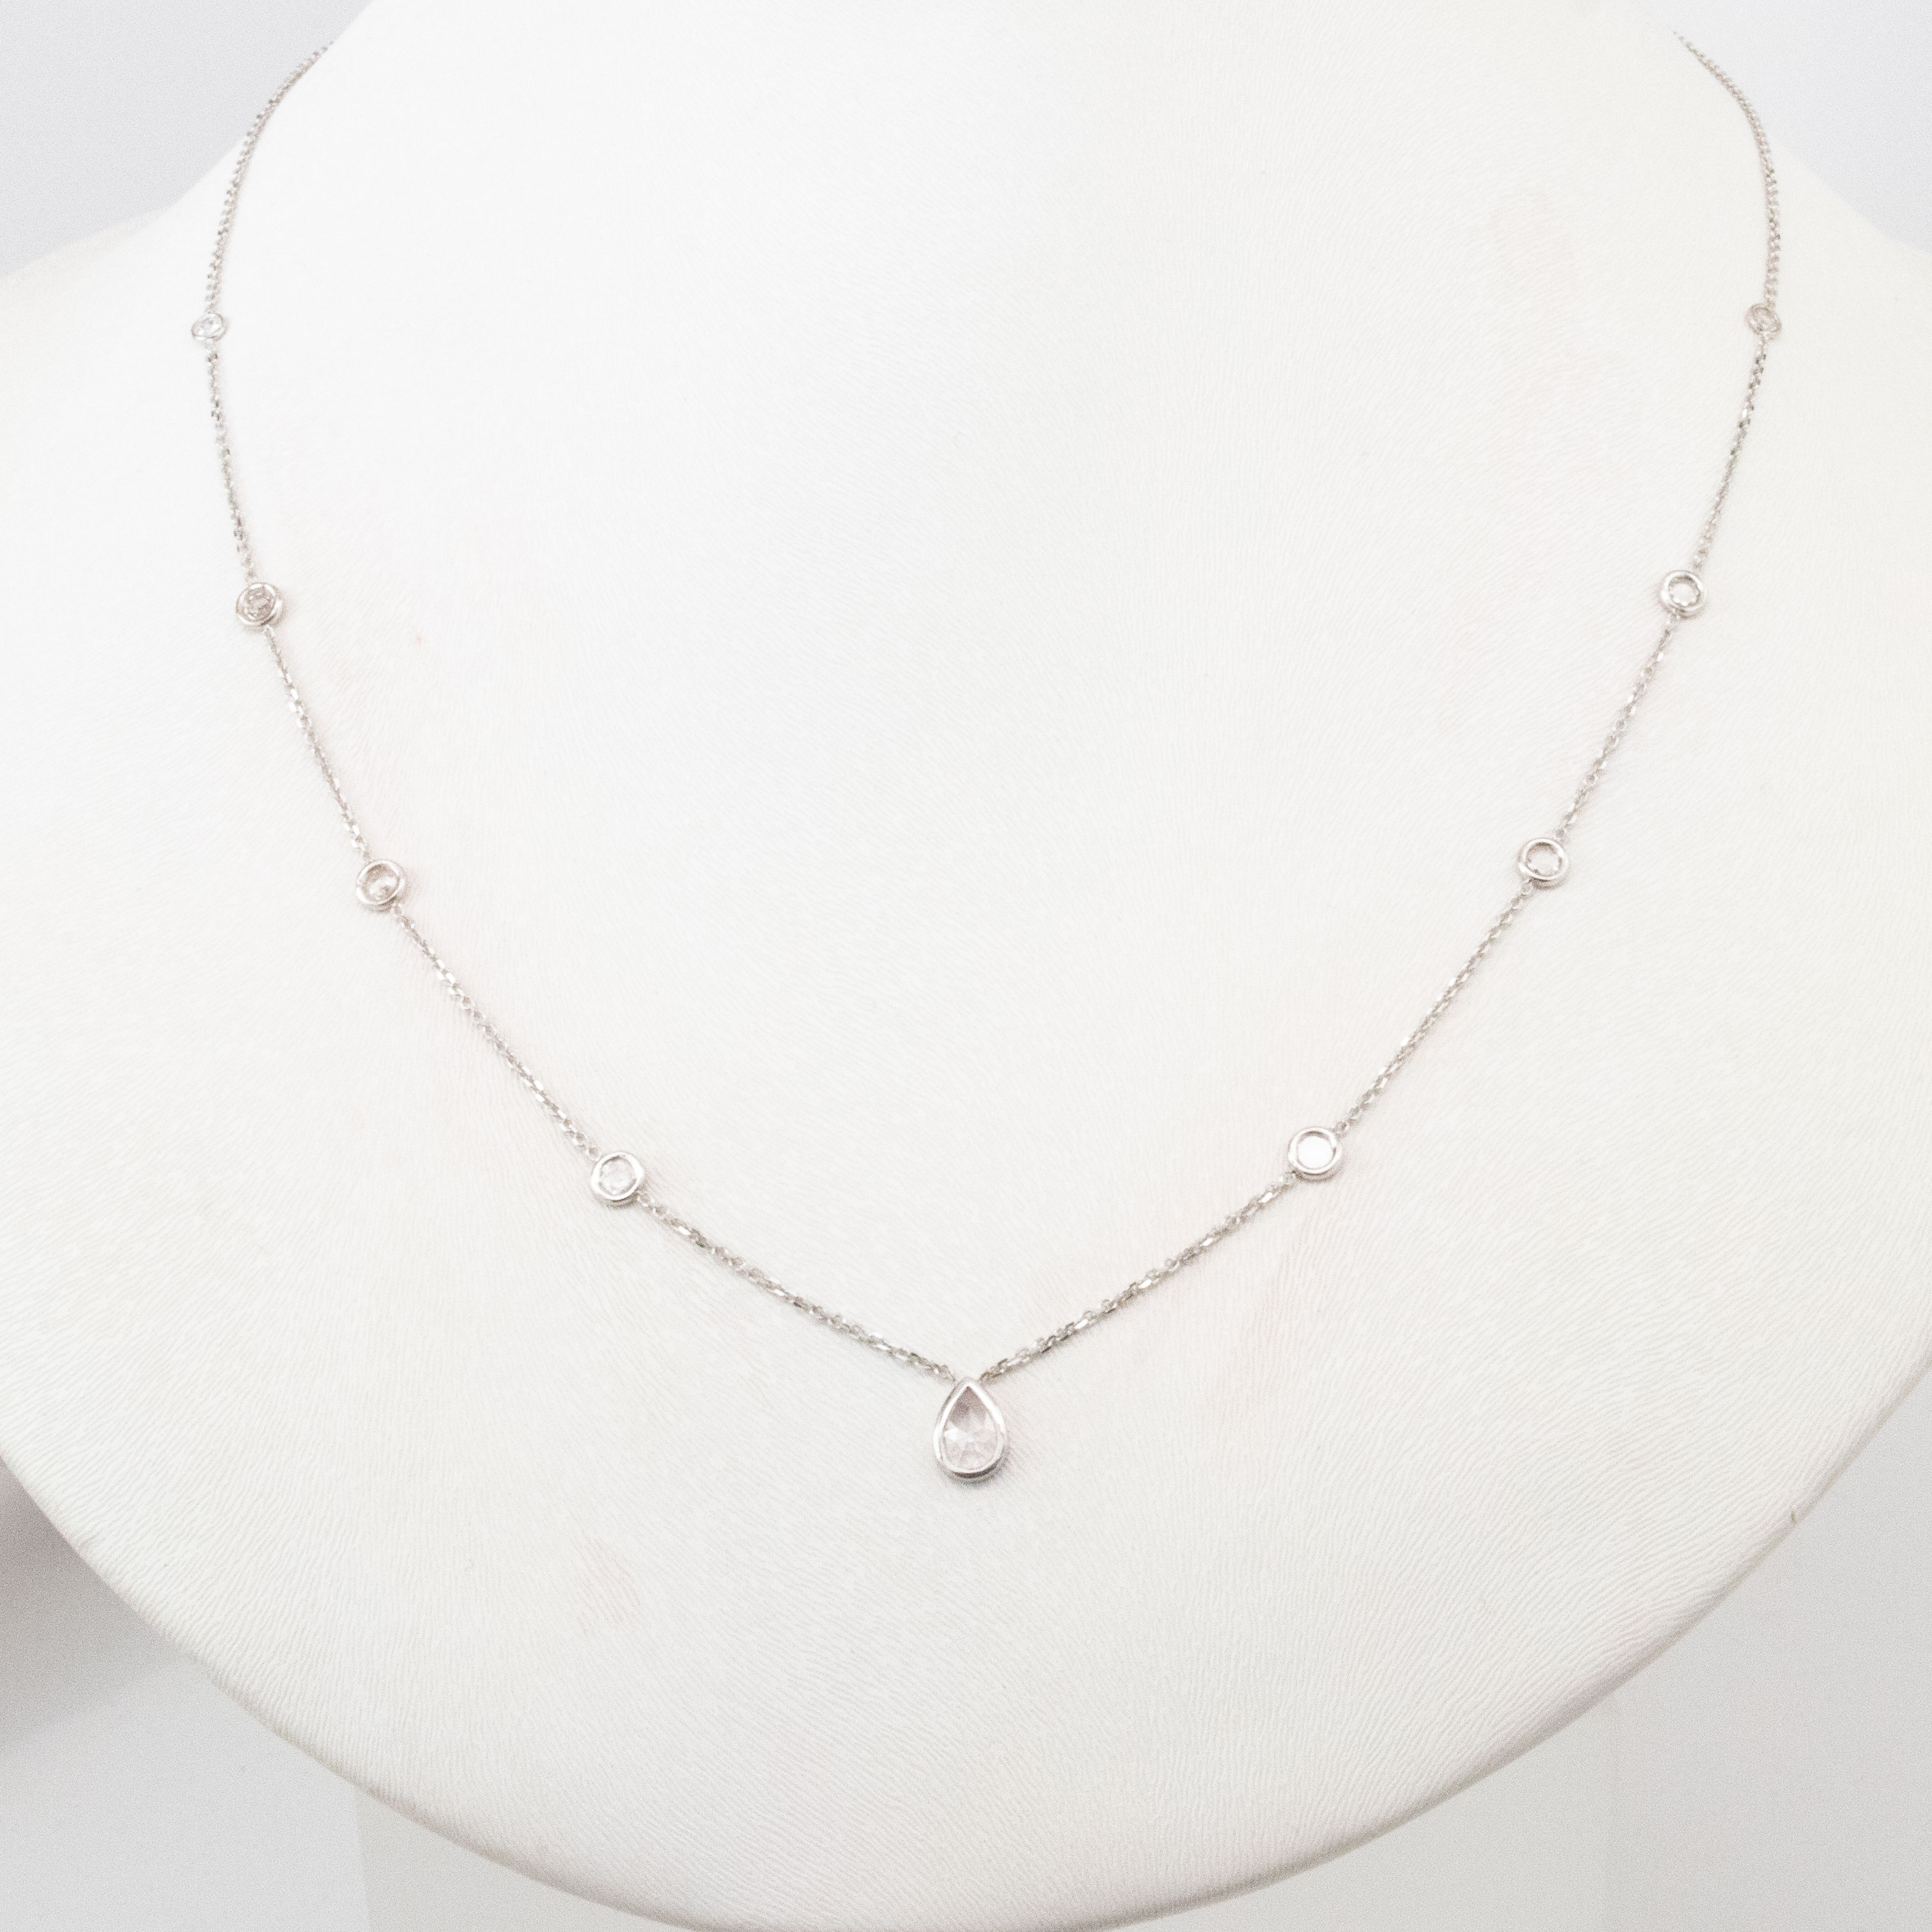 Diamonds by the Yard Necklace, 14k White Gold